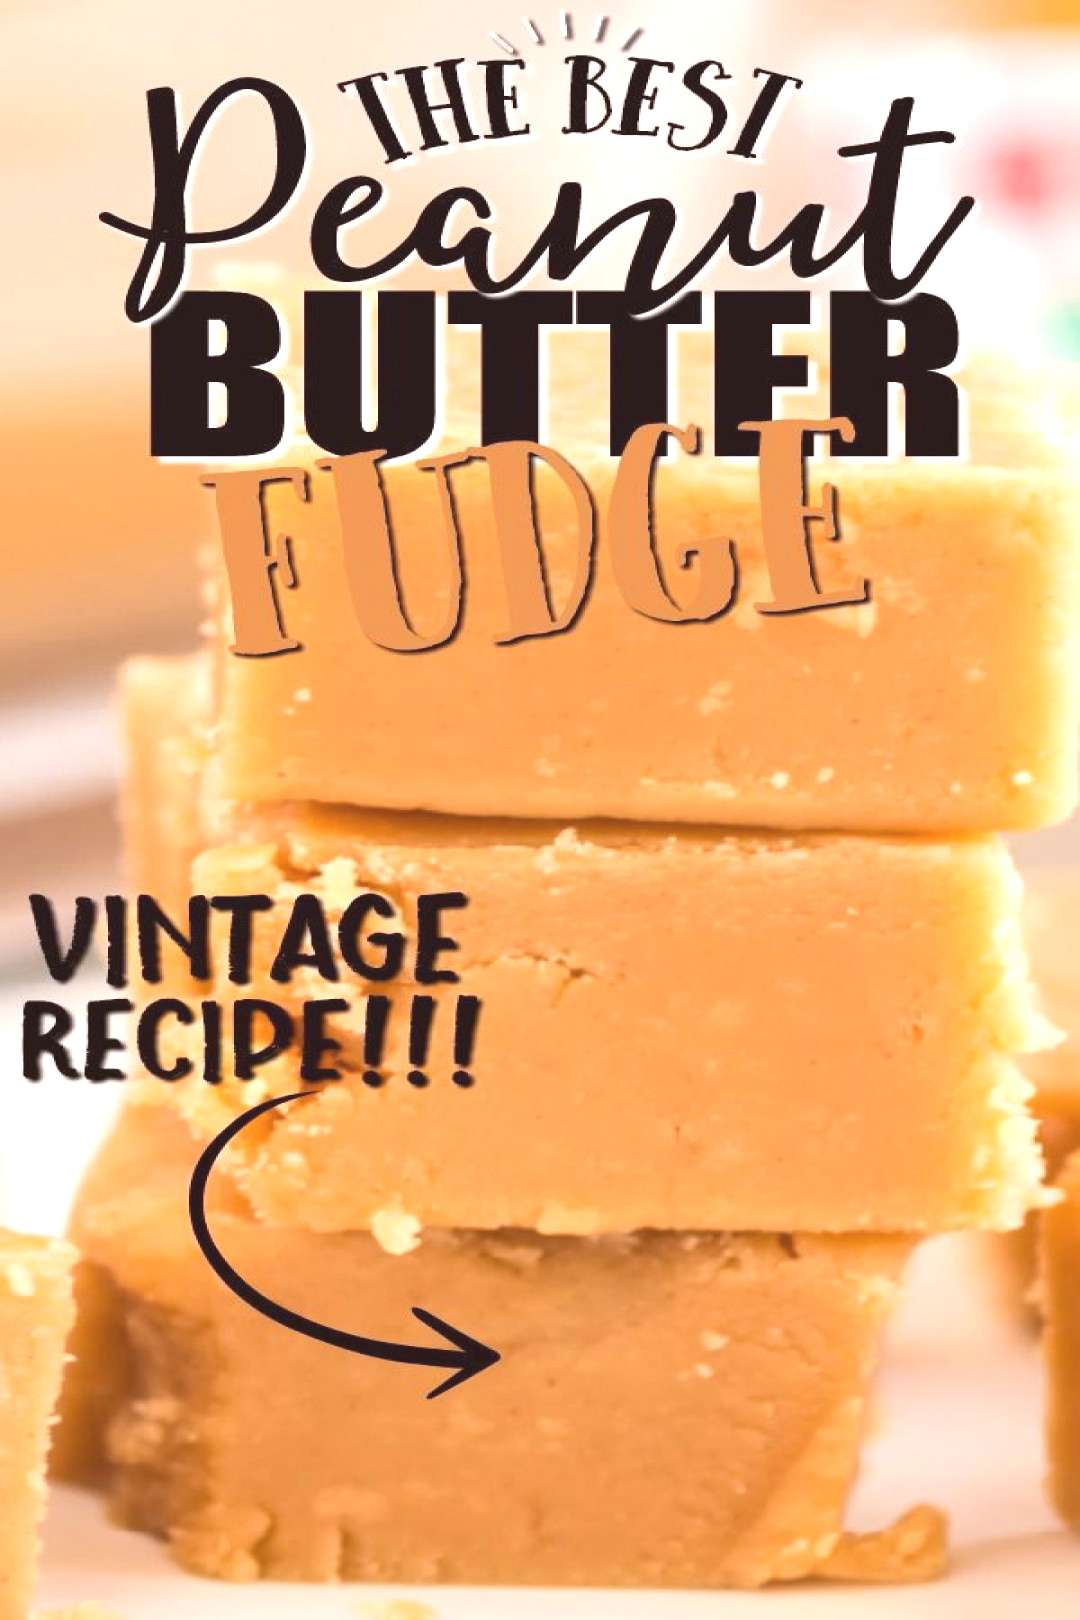 Peanut Butter Fudge Rich and creamy, this peanut butter fudge is irresistible. It takes only a hand